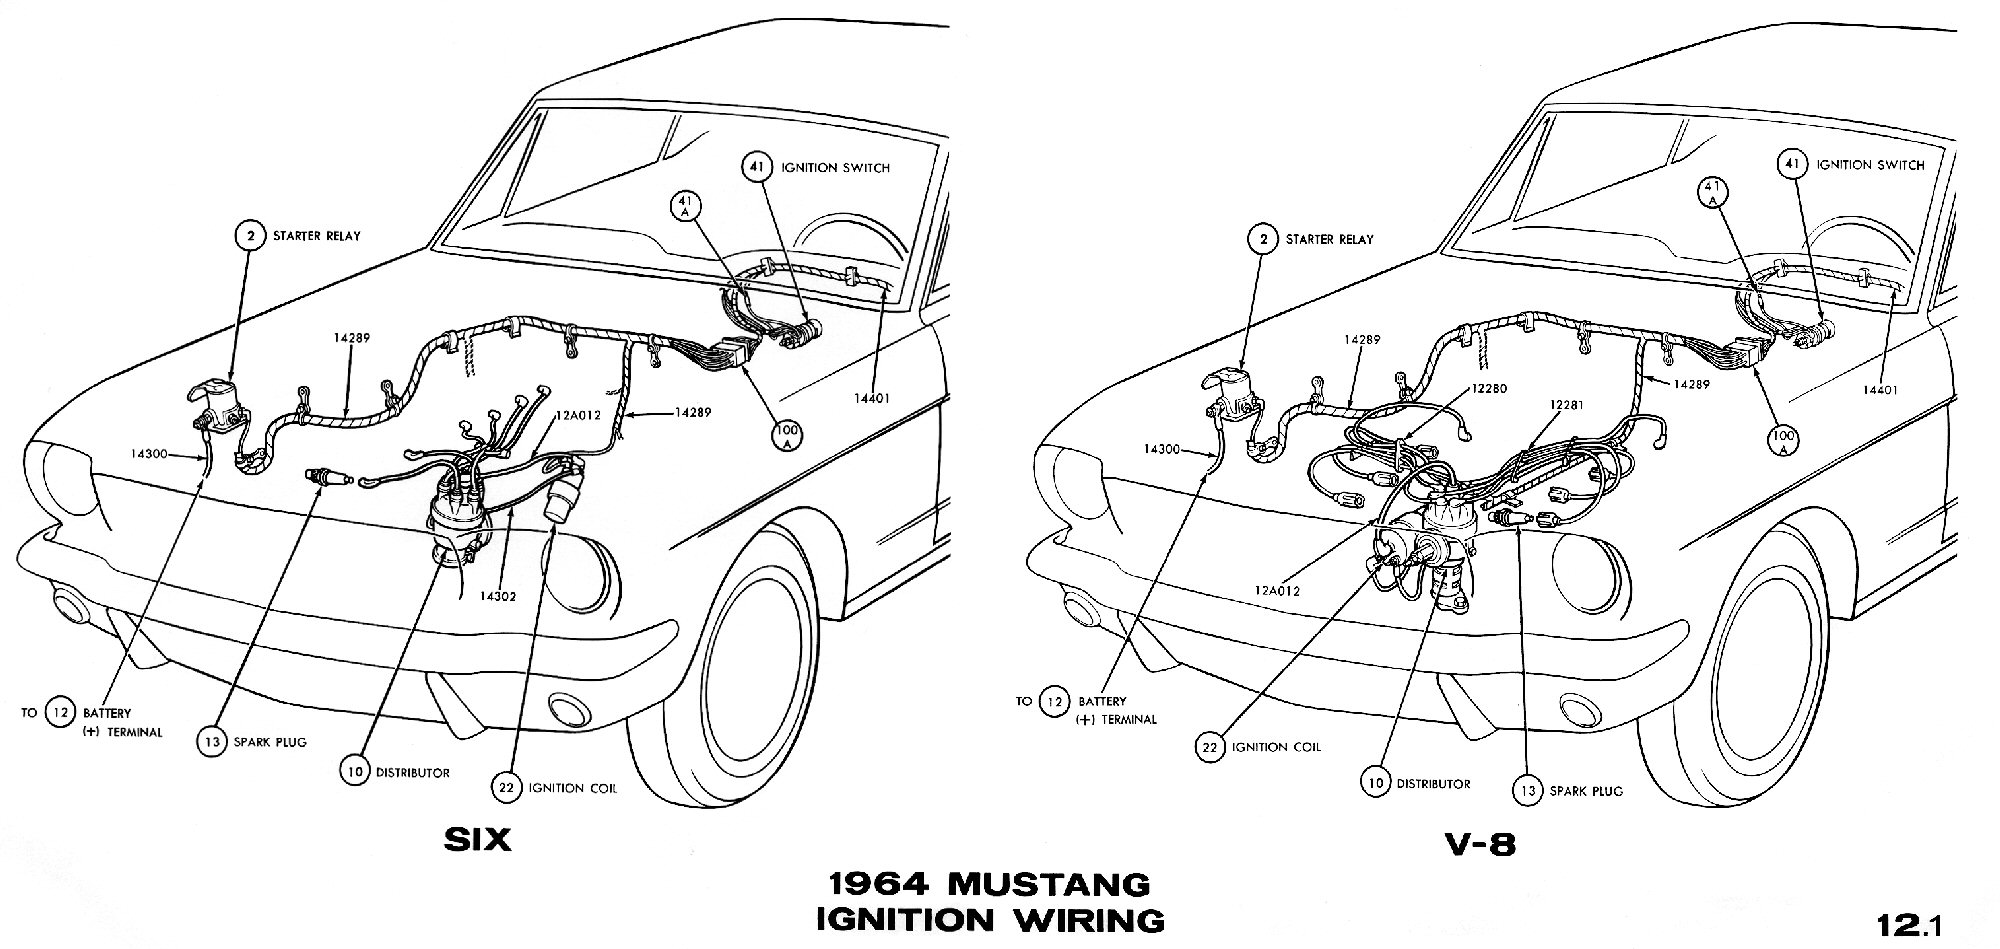 1964 Chevy Ignition Switch Wiring Diagram Library Basic View With 5 Sm1964c Mustang Pictorial